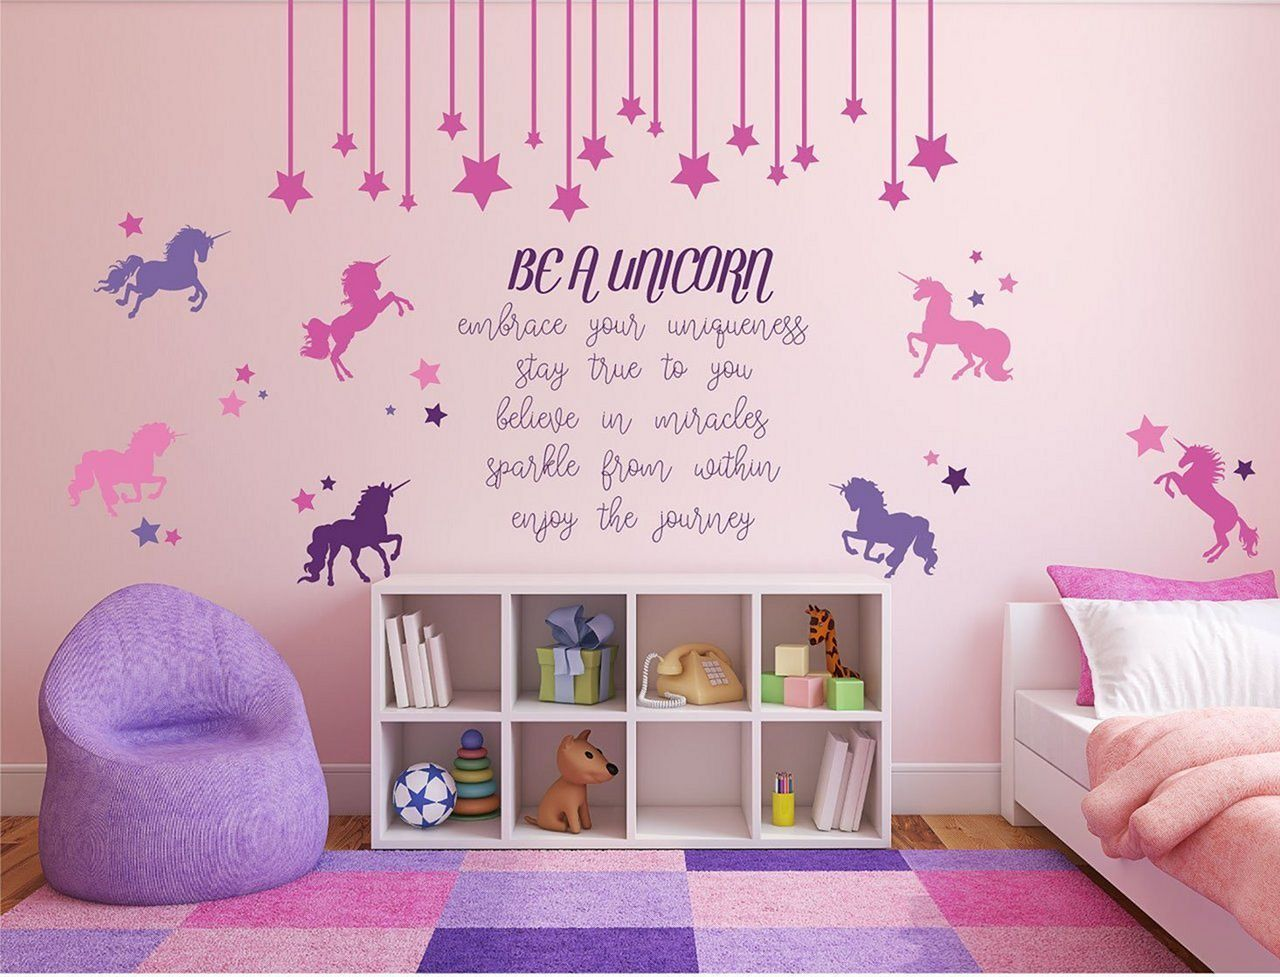 Astounding 12 Best Creative Unicorn Bedroom Ideas To Have Fun Your Sleep Https Decoredo Com 21834 12 Unicorn Room Decor Unicorn Bedroom Decor Unicorn Bedroom